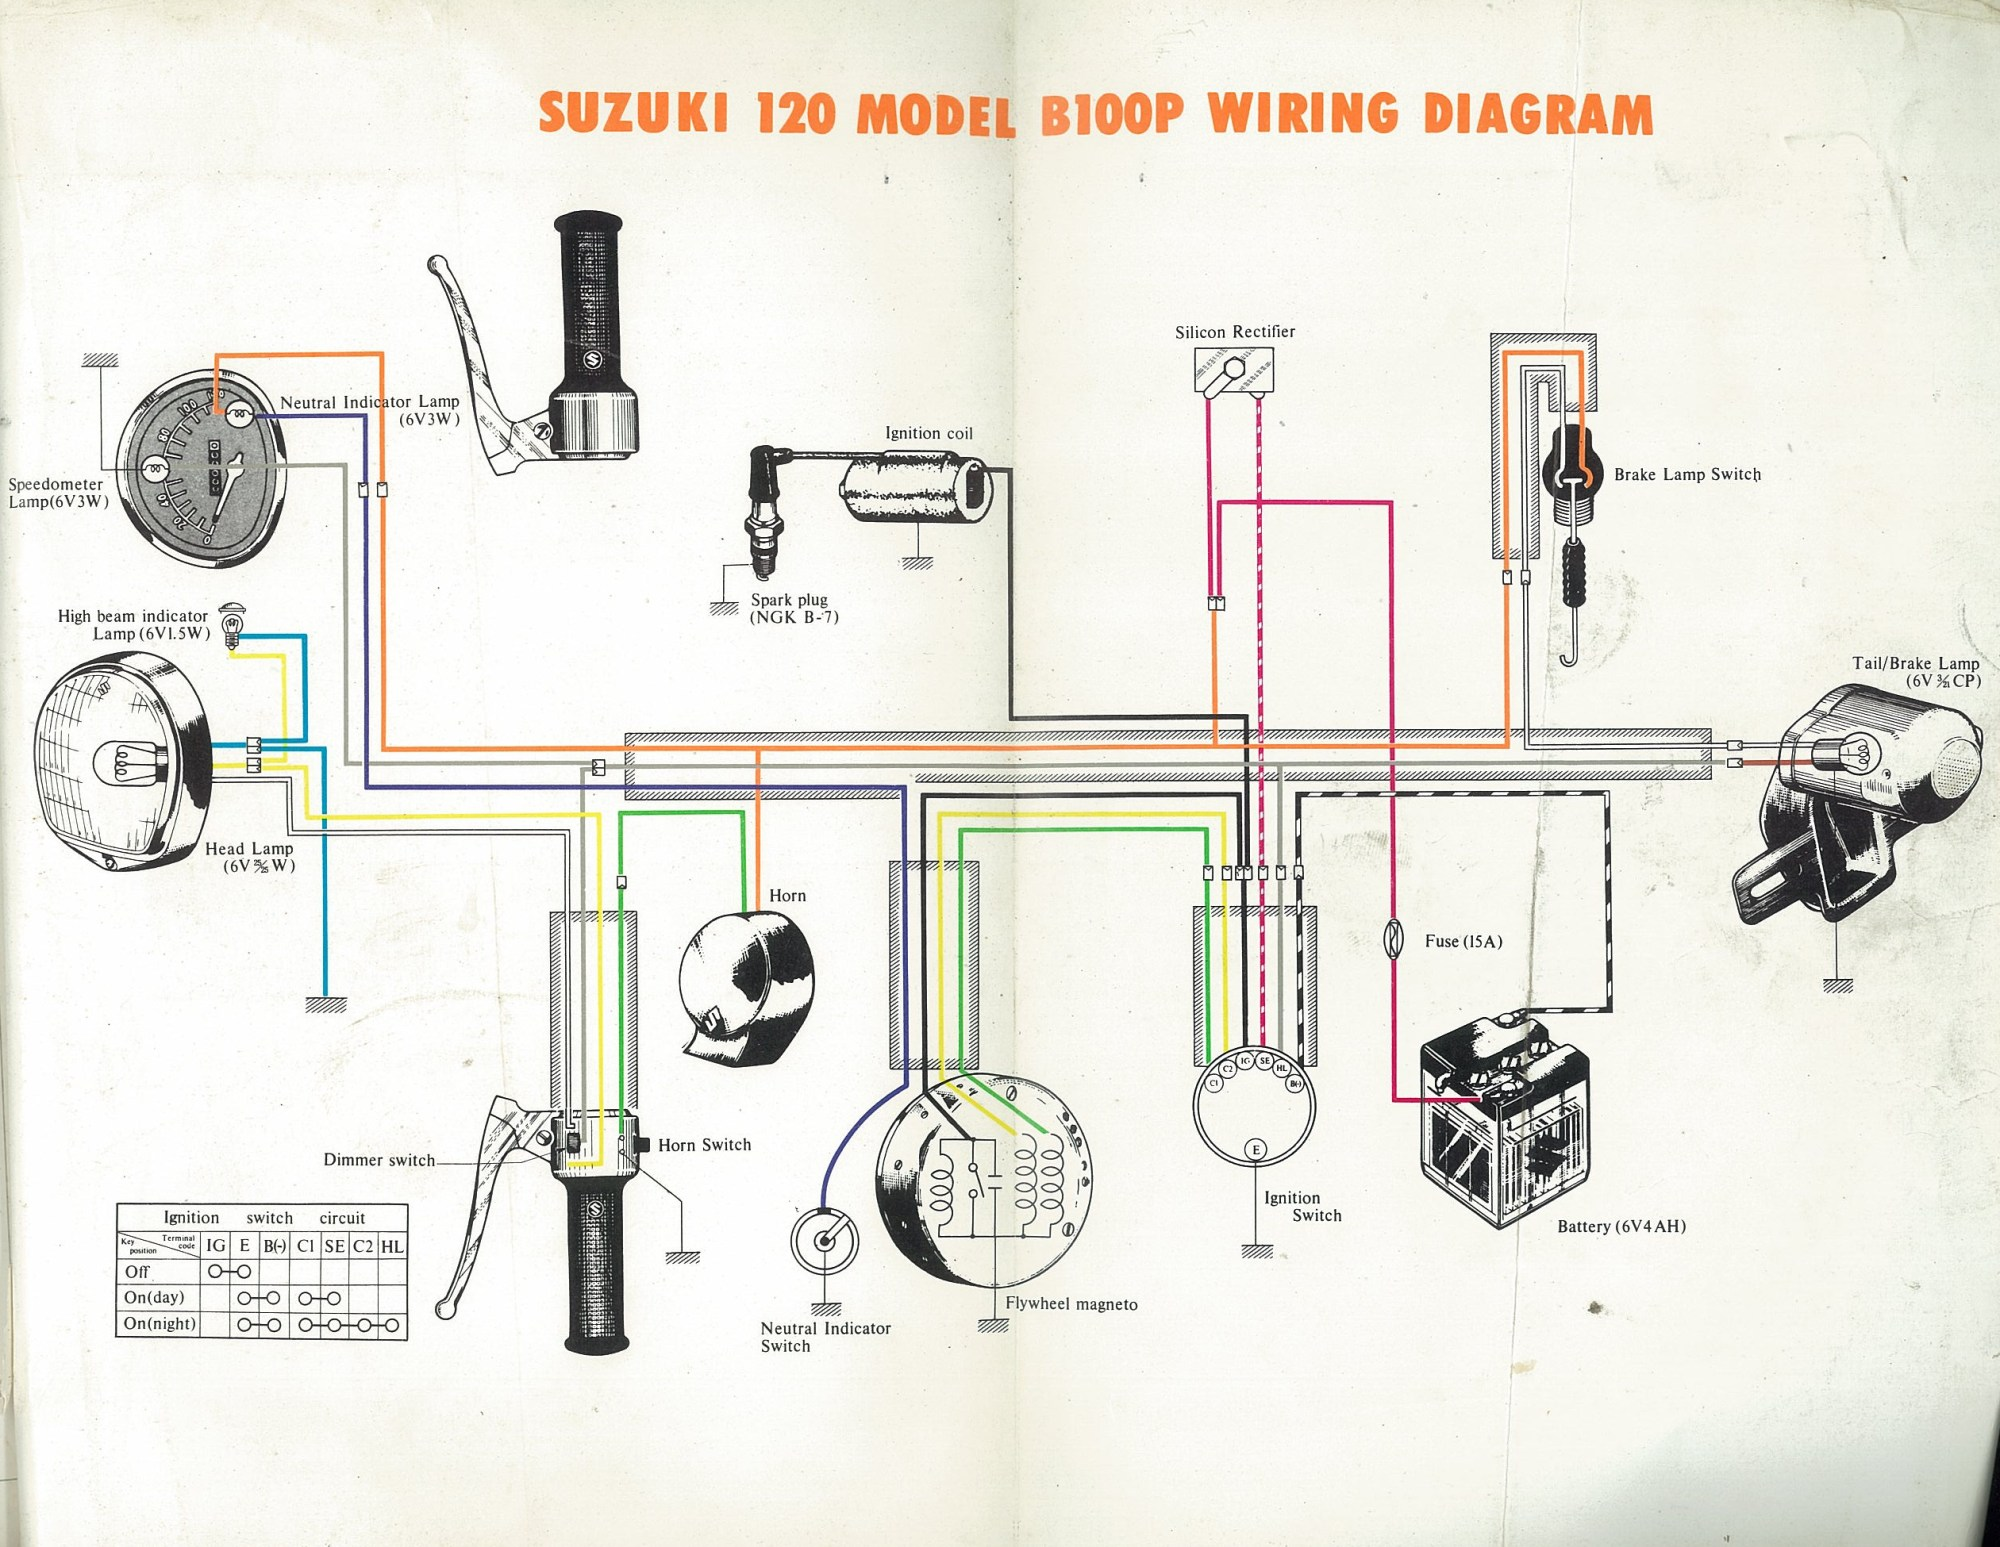 hight resolution of suzuki v100 wiring diagram wiring diagram for you suzuki 230 quadsport wiring suzuki v100 wiring diagram